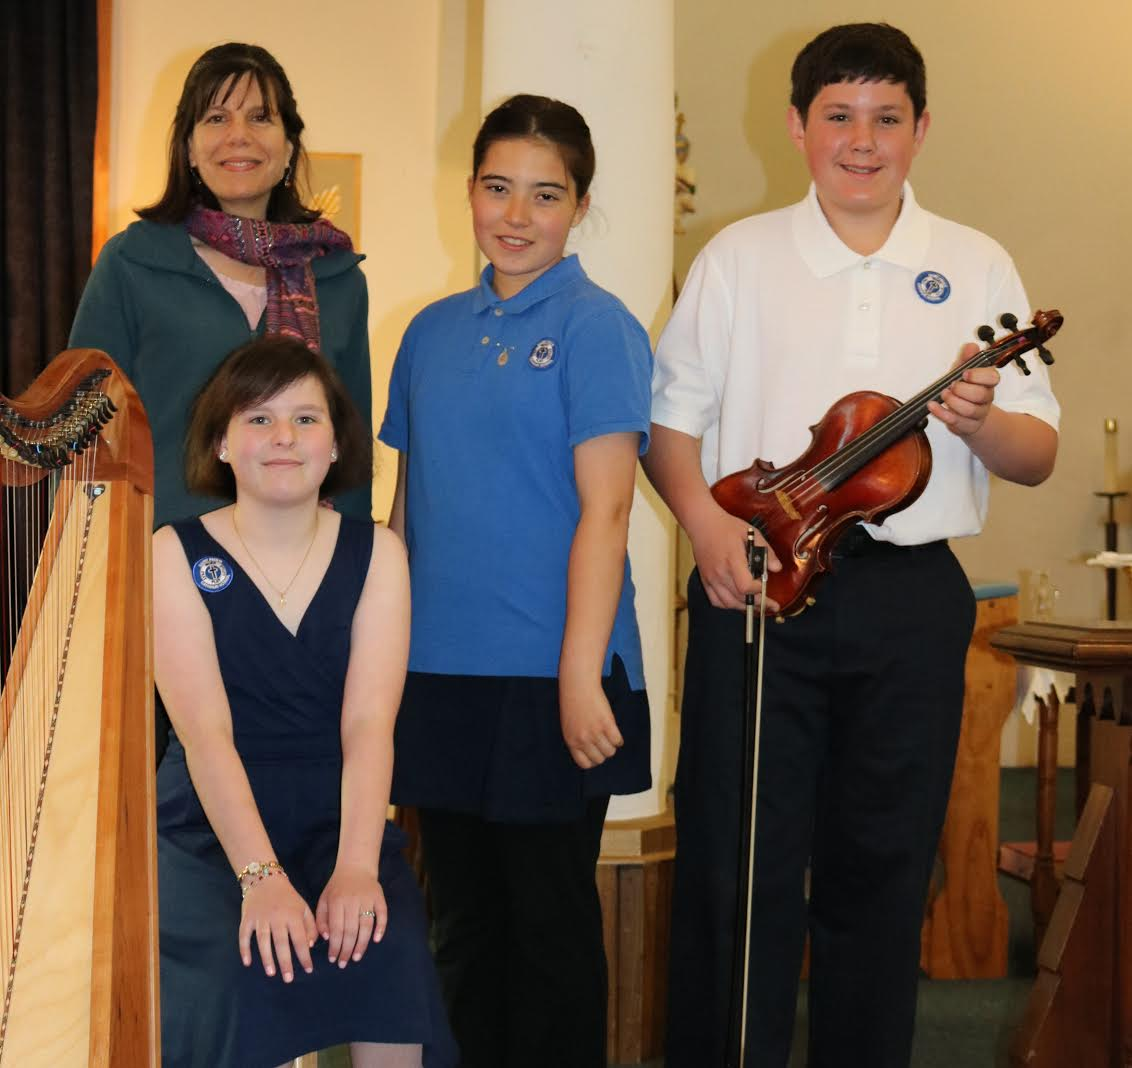 Mrs. Matthews, Isabella, Nicholas and Mary play for school Mass with Bishop Coyne.